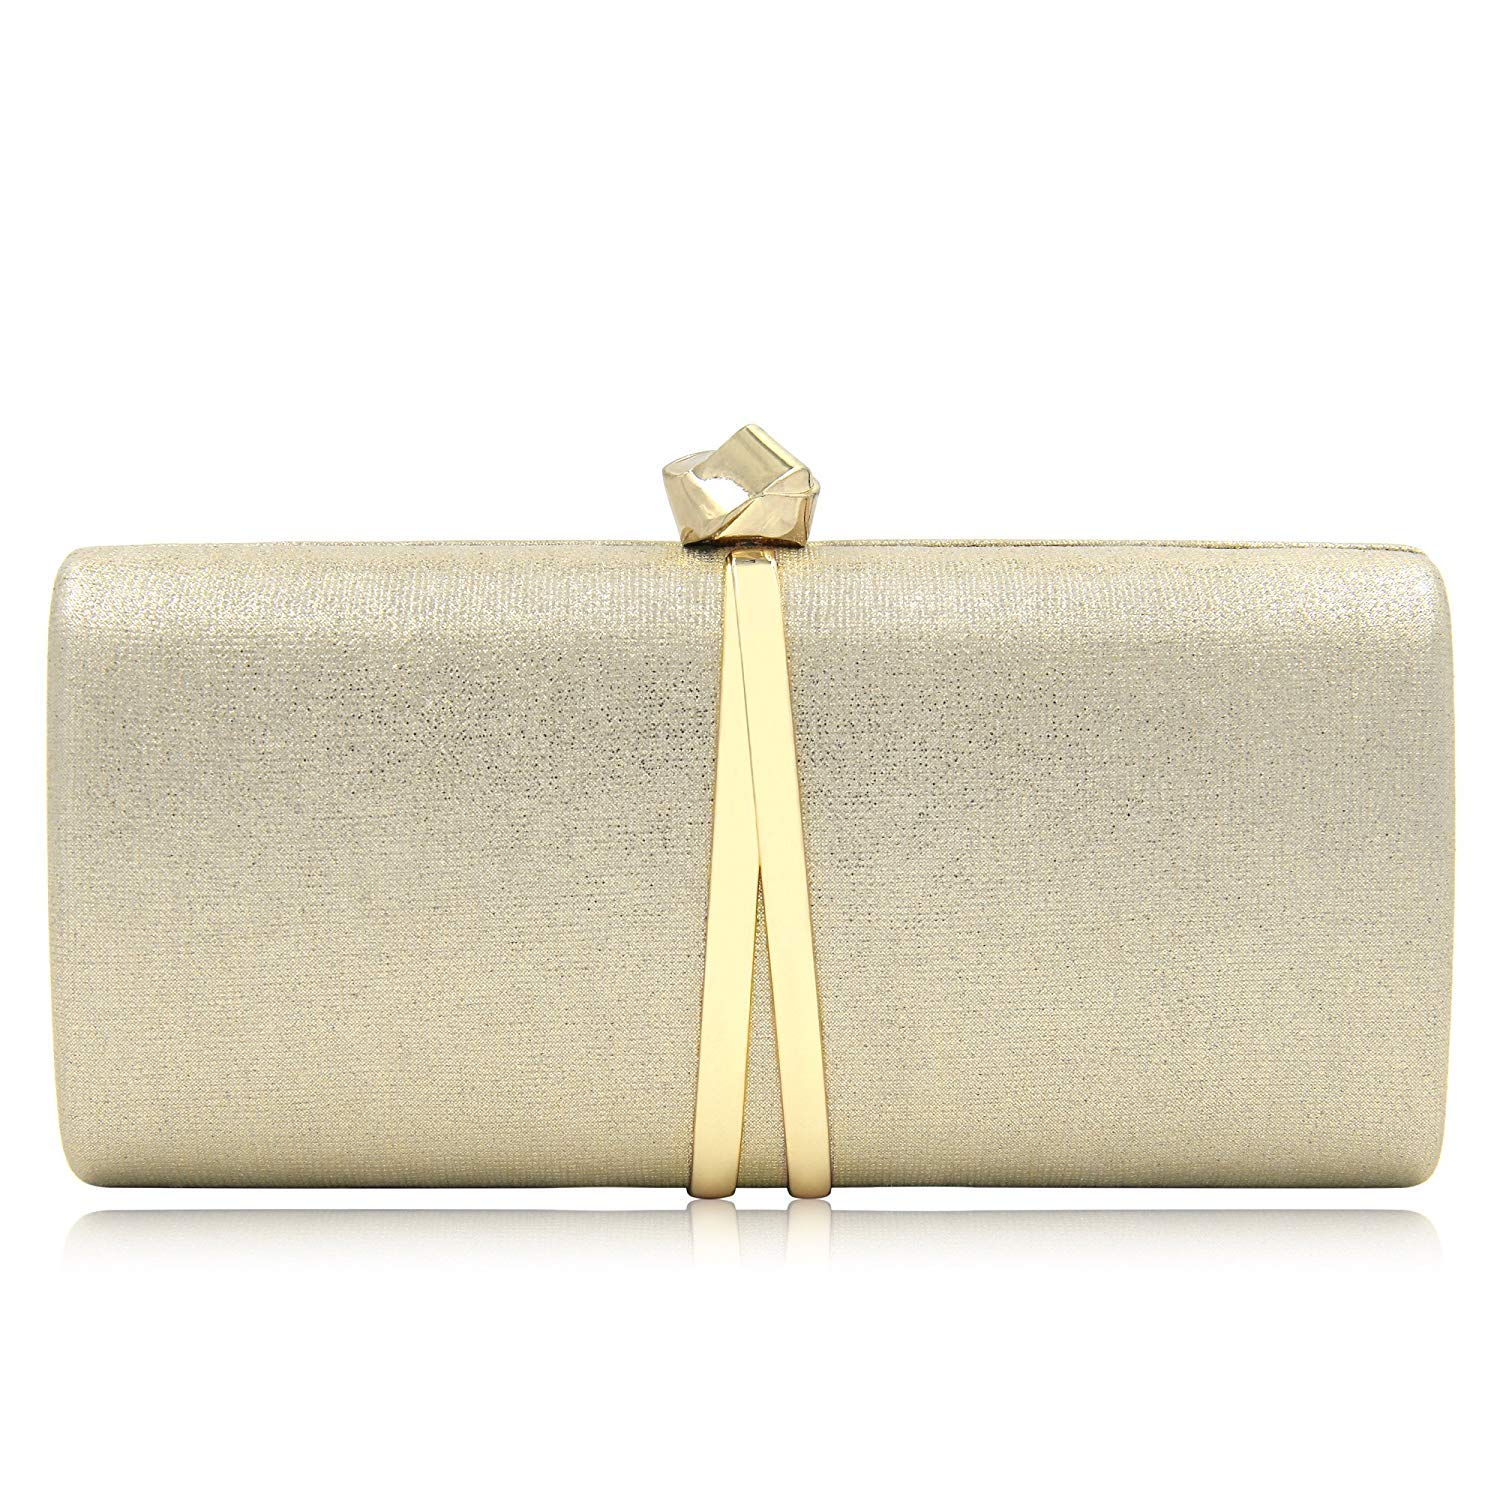 Women Clutches Solid Evening Bag Sparkling Metallic Clutch Purses For Wedding And Party (Gold)